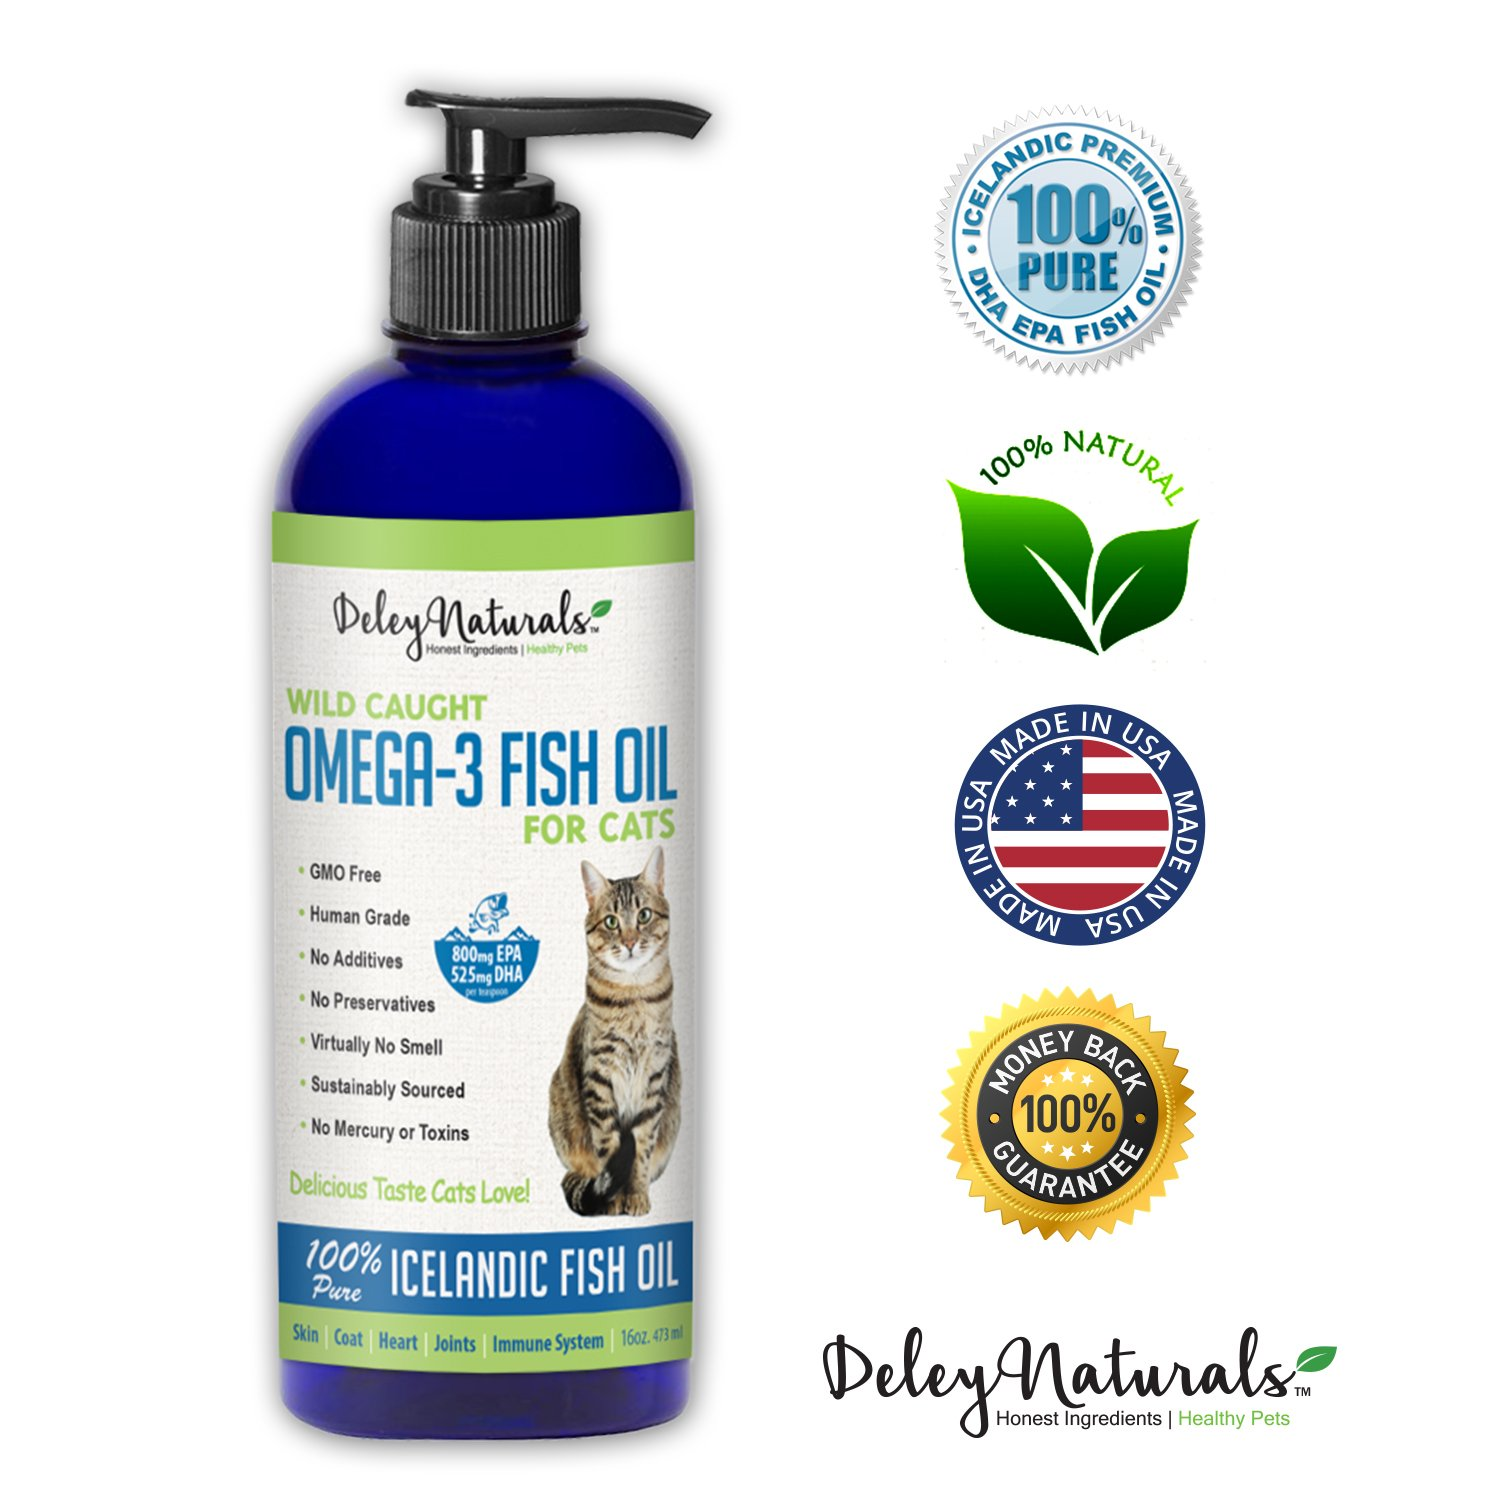 Wild Caught Fish Oil for Cats - Omega 3-6-9, GMO Free - Reduces Shedding, Supports Skin, Coat, Joints, Heart, Brain, Immune System - Highest EPA & DHA Potency - Only Ingredient is Fish - 16 oz by Deley Naturals